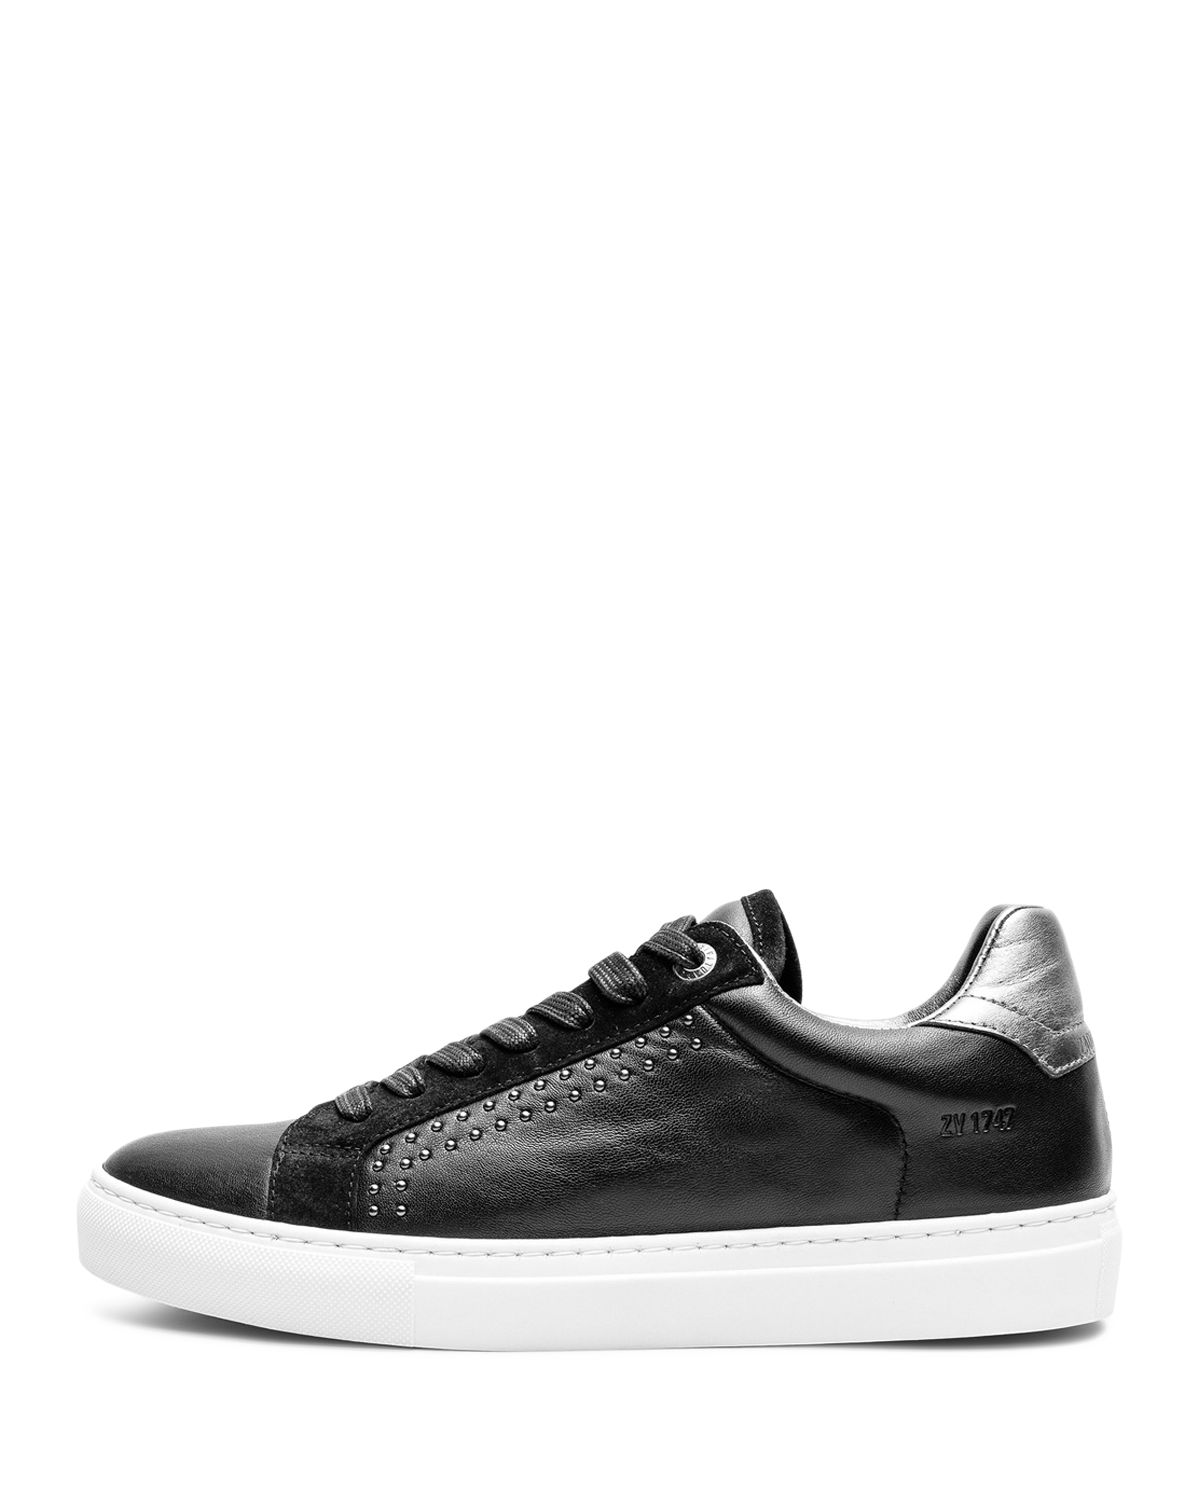 Zadig & Voltaire Women's ZV1747 Skulls Leather Low Top Lace Up Sneakers